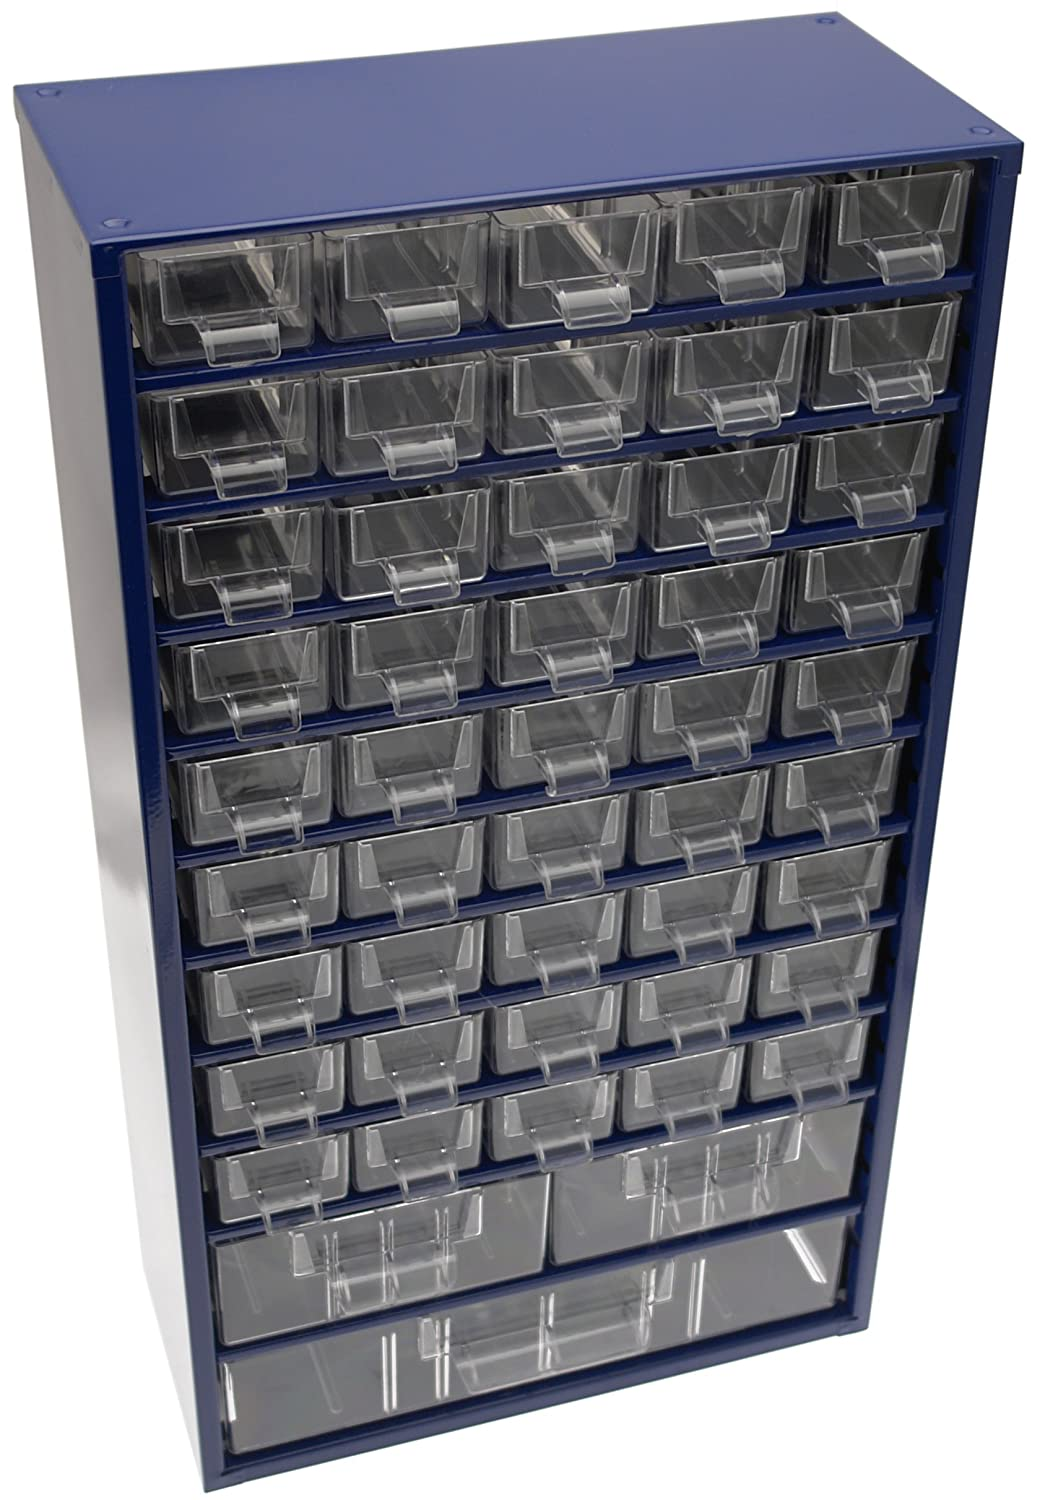 metal storage cabinets with drawers. vektor sc6744 metal storage cabinet with 48-drawers: amazon.co.uk: diy \u0026 tools cabinets drawers r